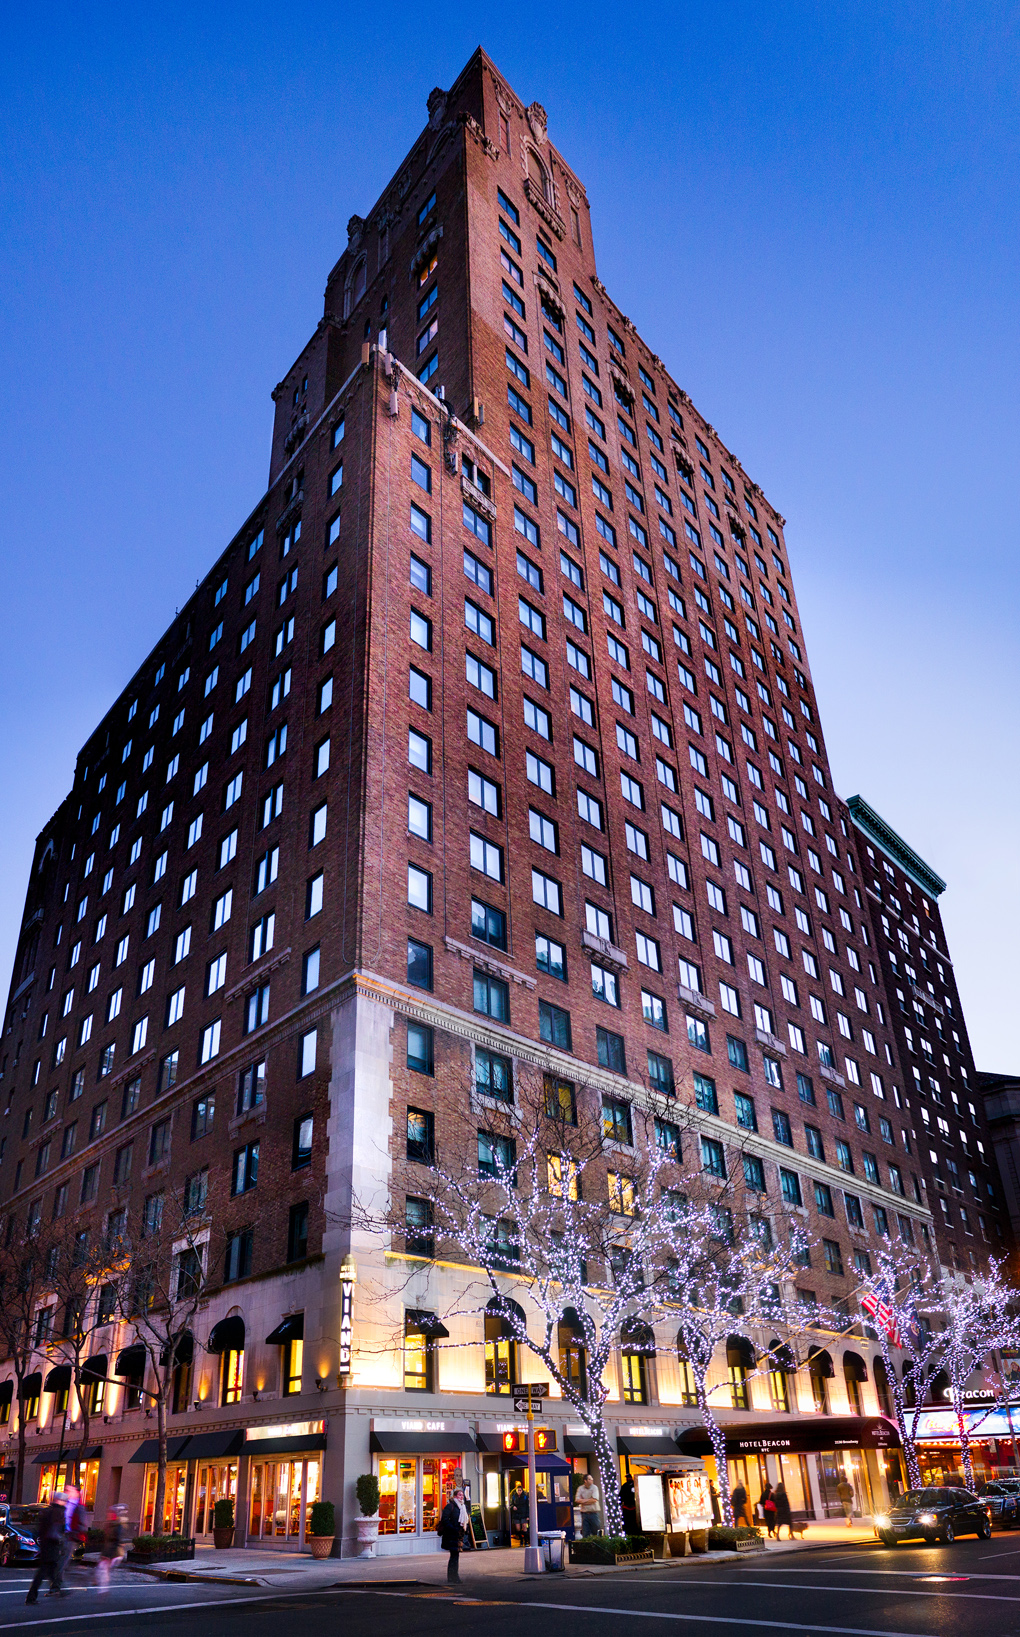 meet tom travers from hotel beacon new york city  the